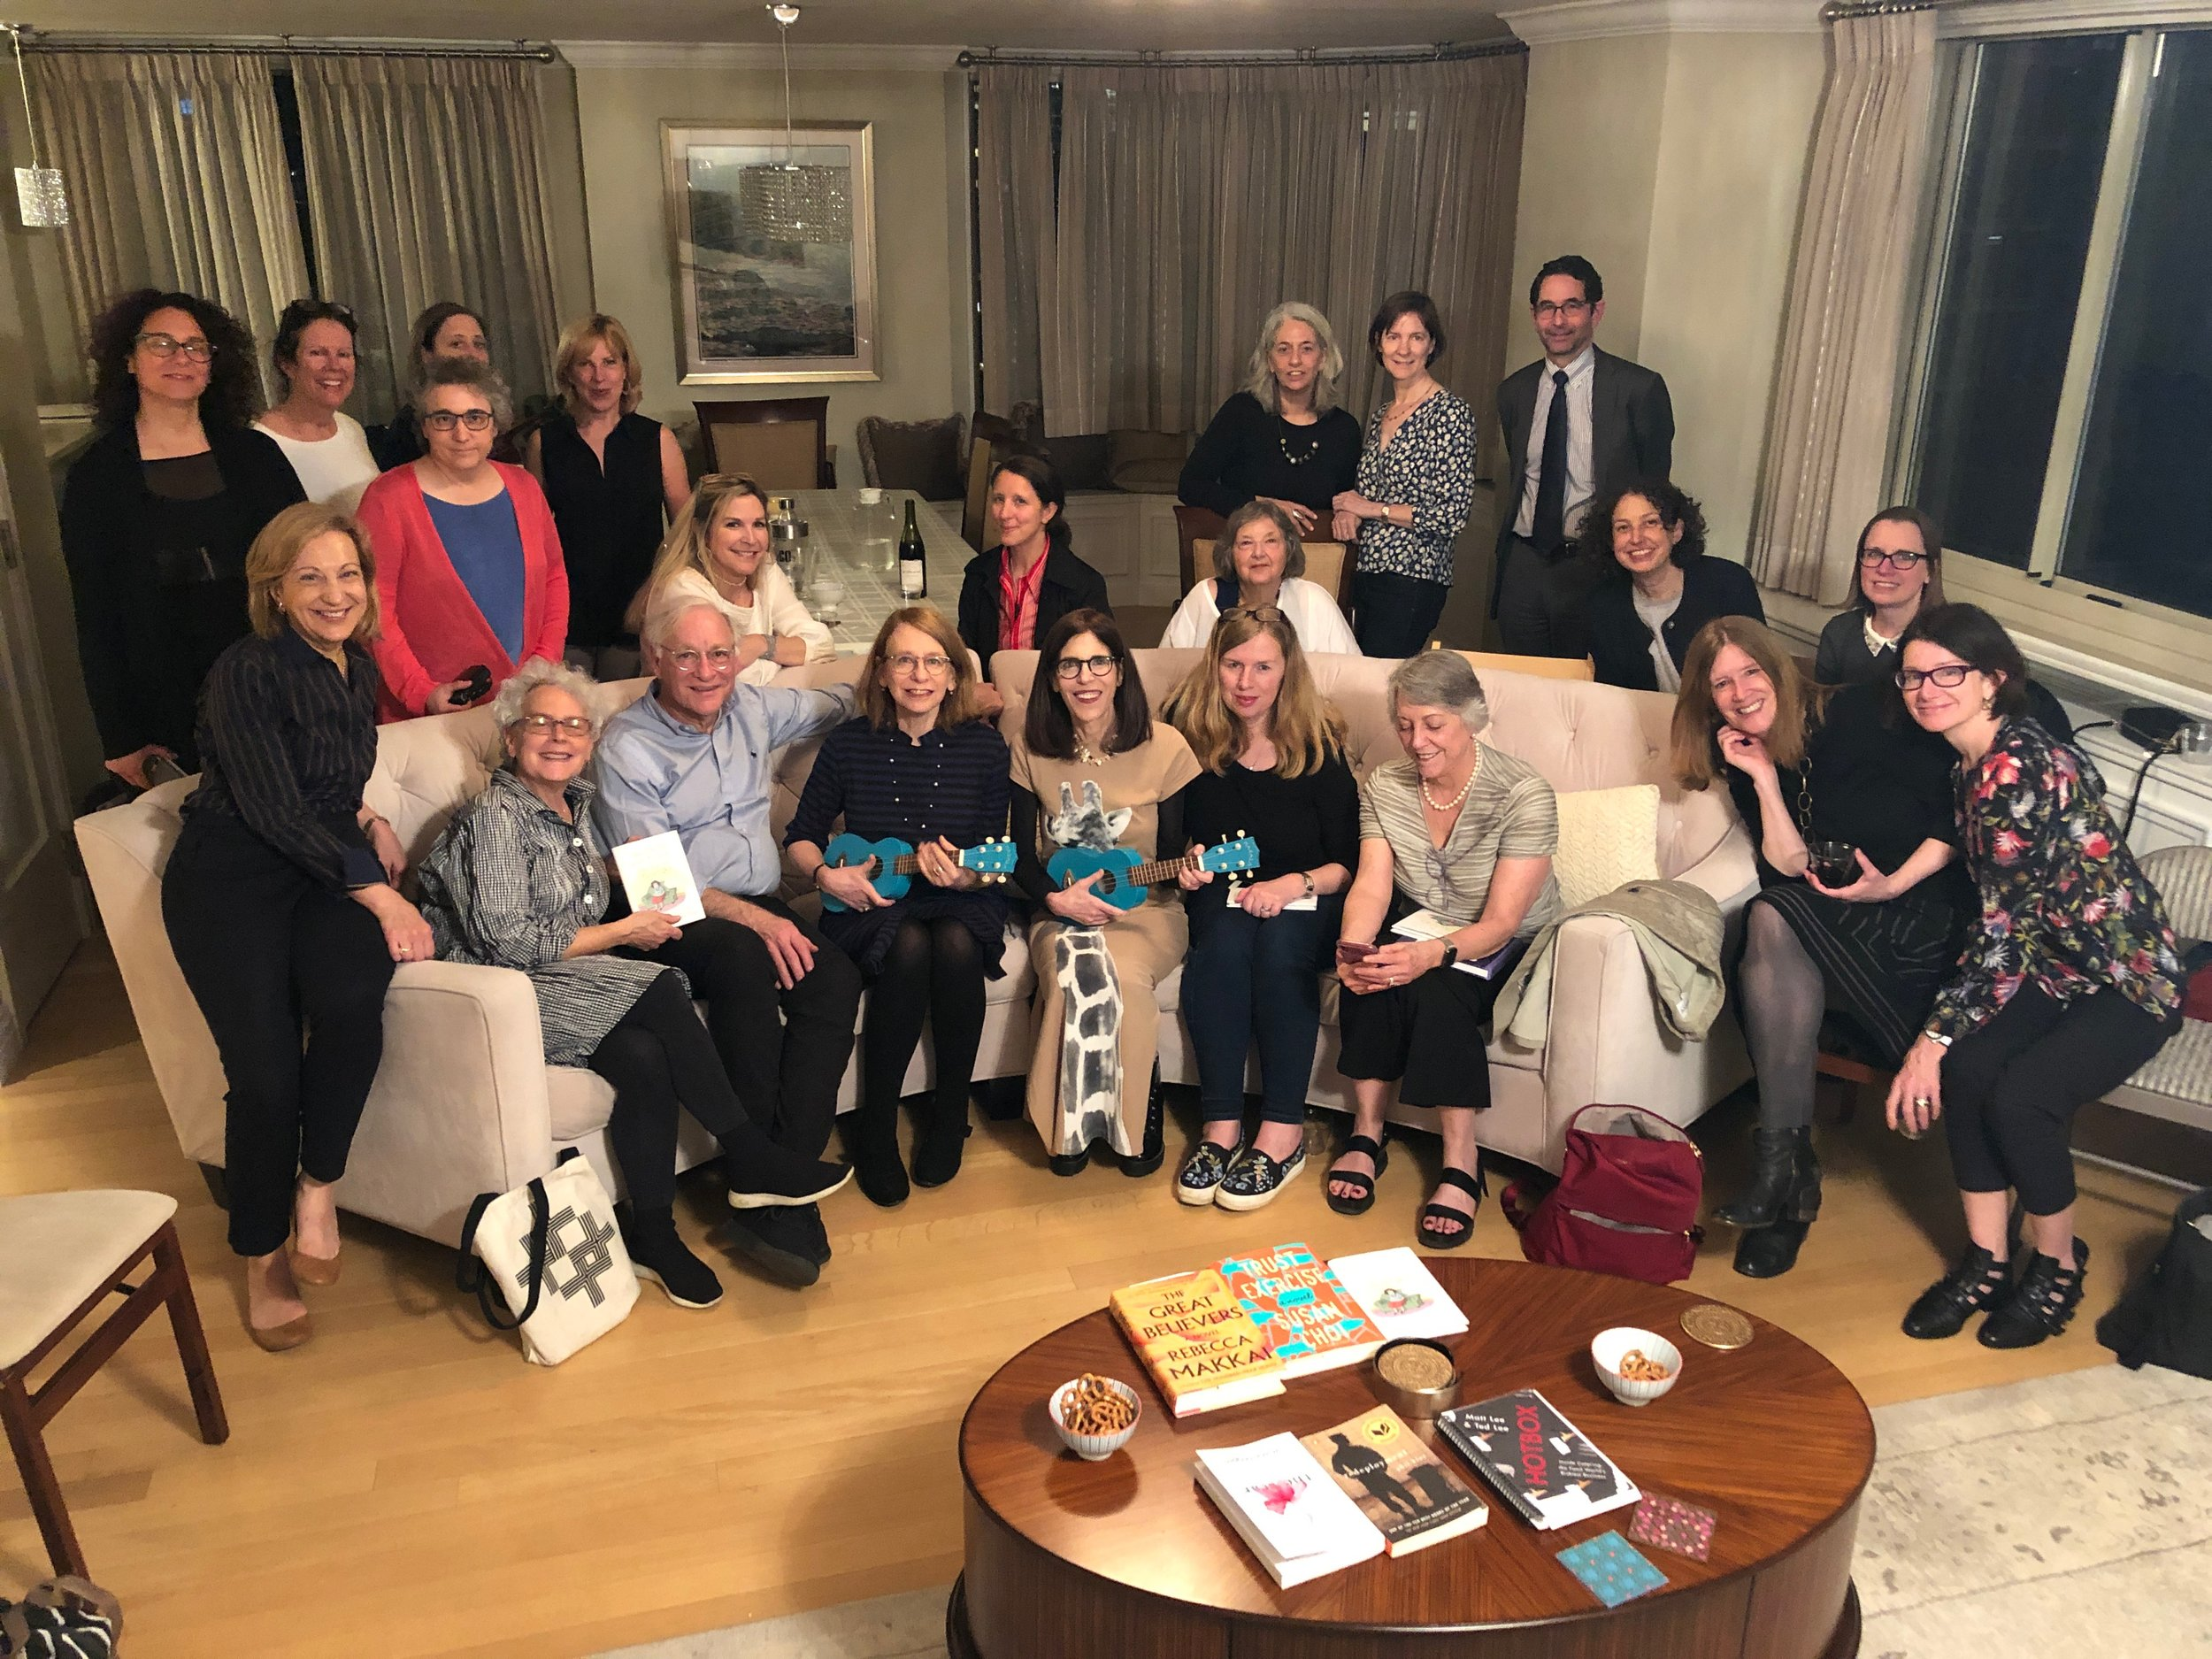 Roz Chast and Patty Marx, with ukuleles, at their book group for WHY DON'T YOU WRITE MY EULOGY NOW SO I CAN CORRECT IT?